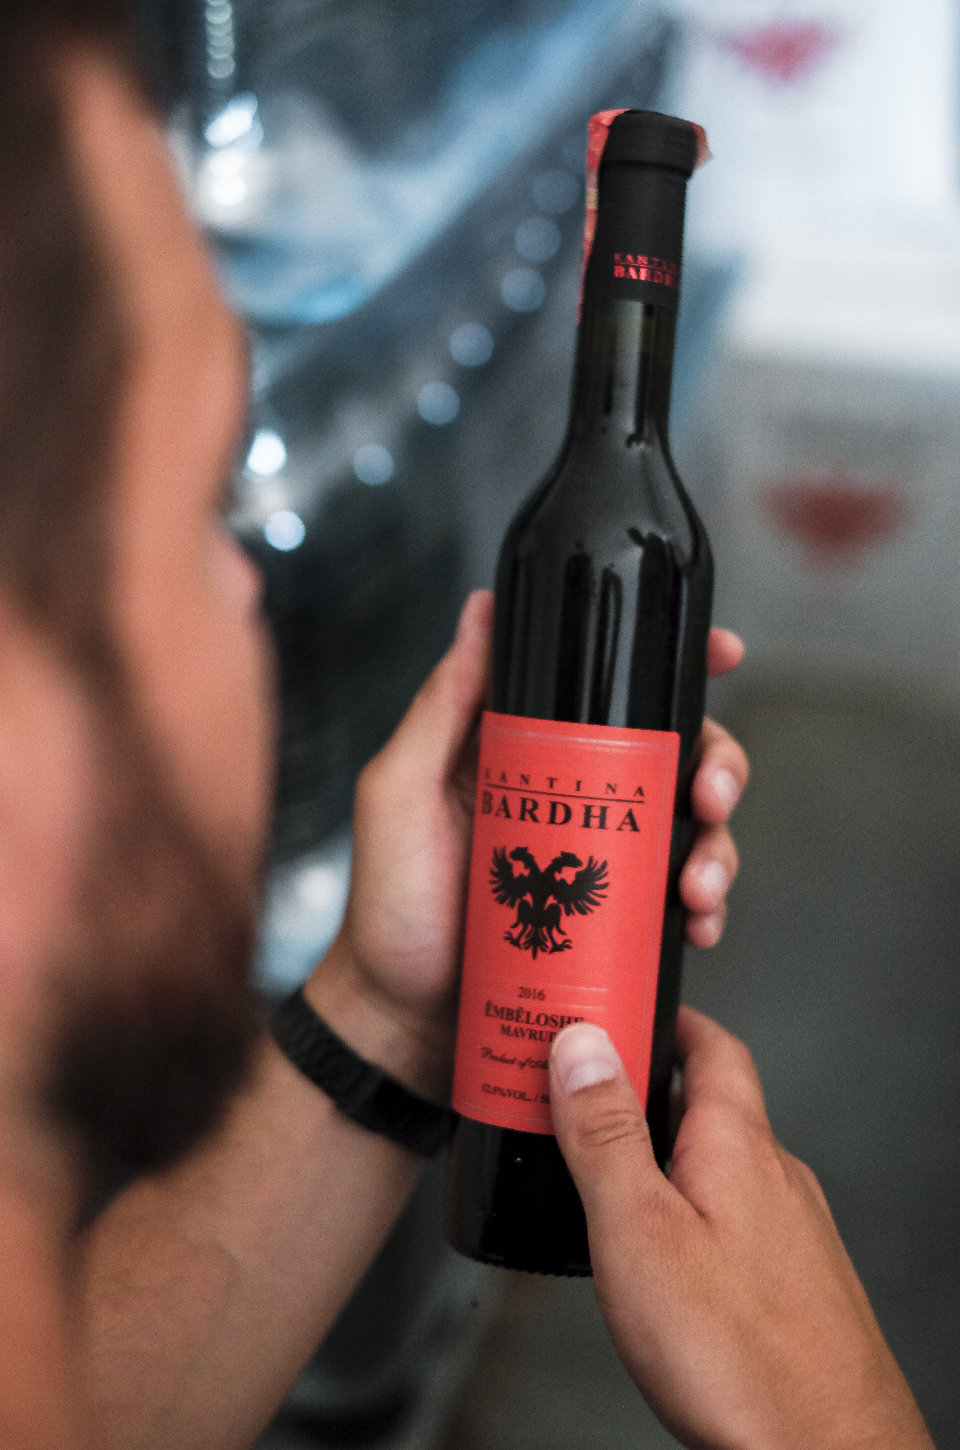 Man holding a bottle of wine from bardha winery